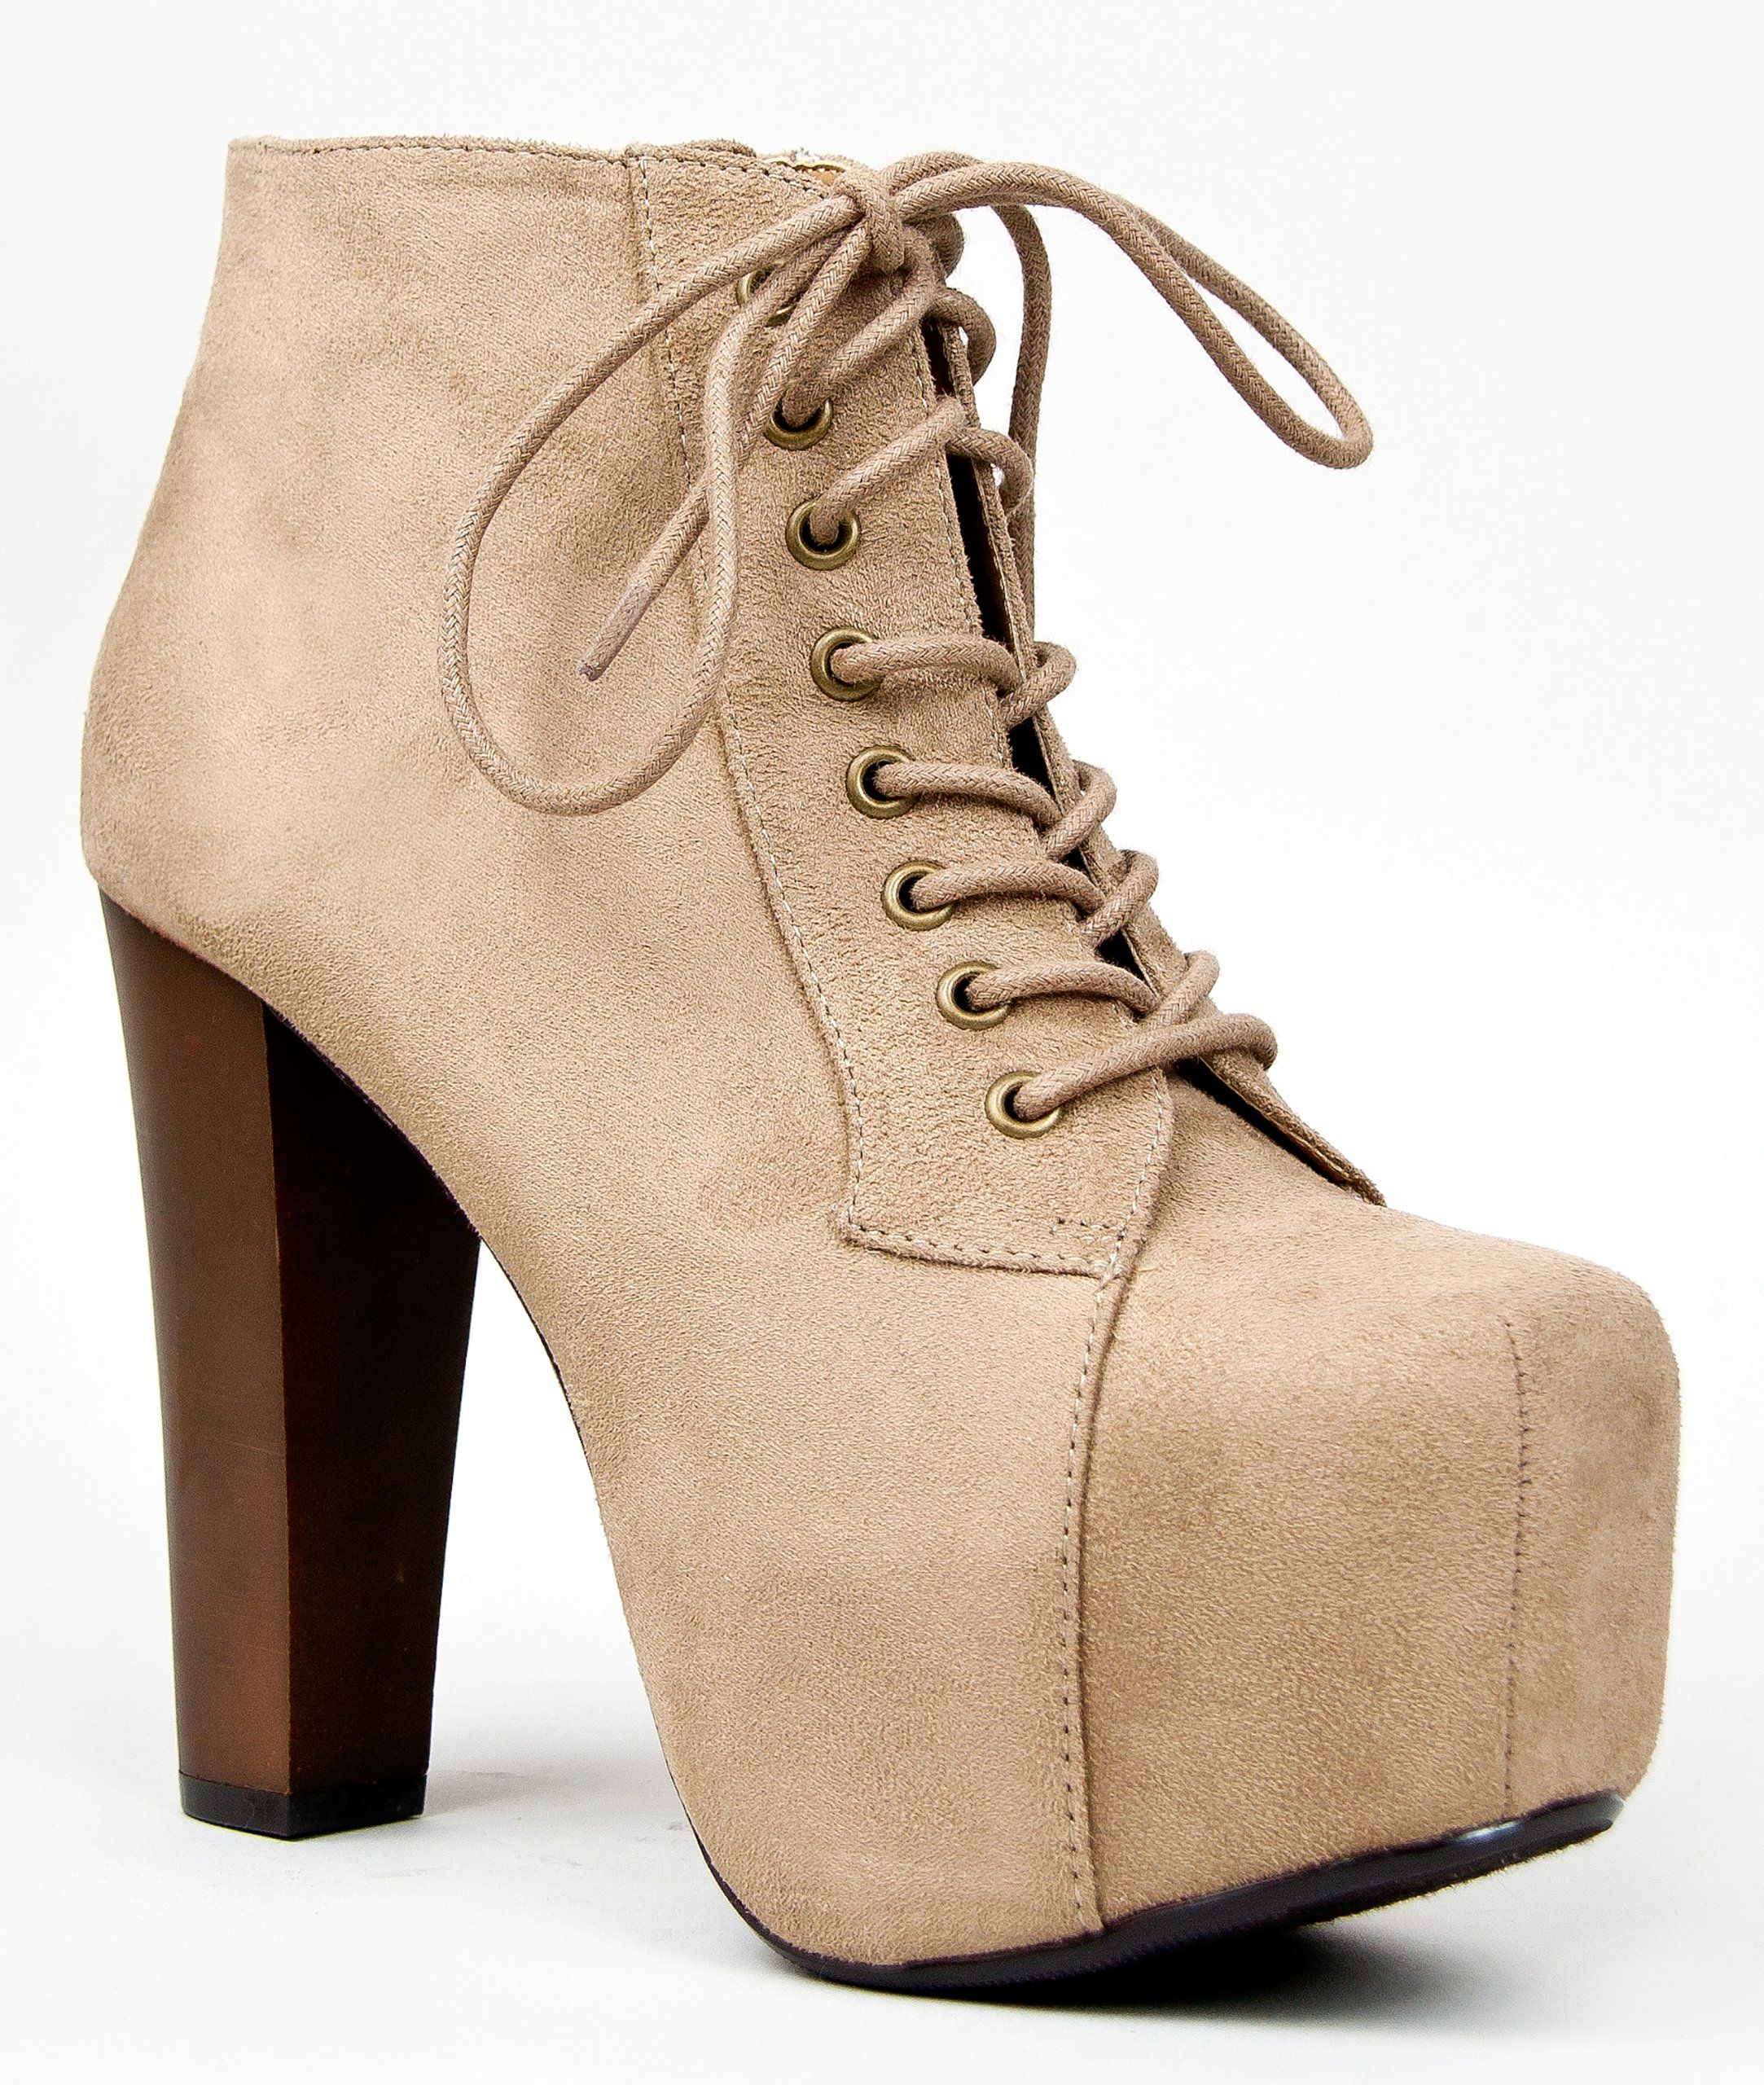 6fc048386be21 Amazon.com: Speed Limit 98 Rosa-S Bootie Boots: Clothing | Shoes ...